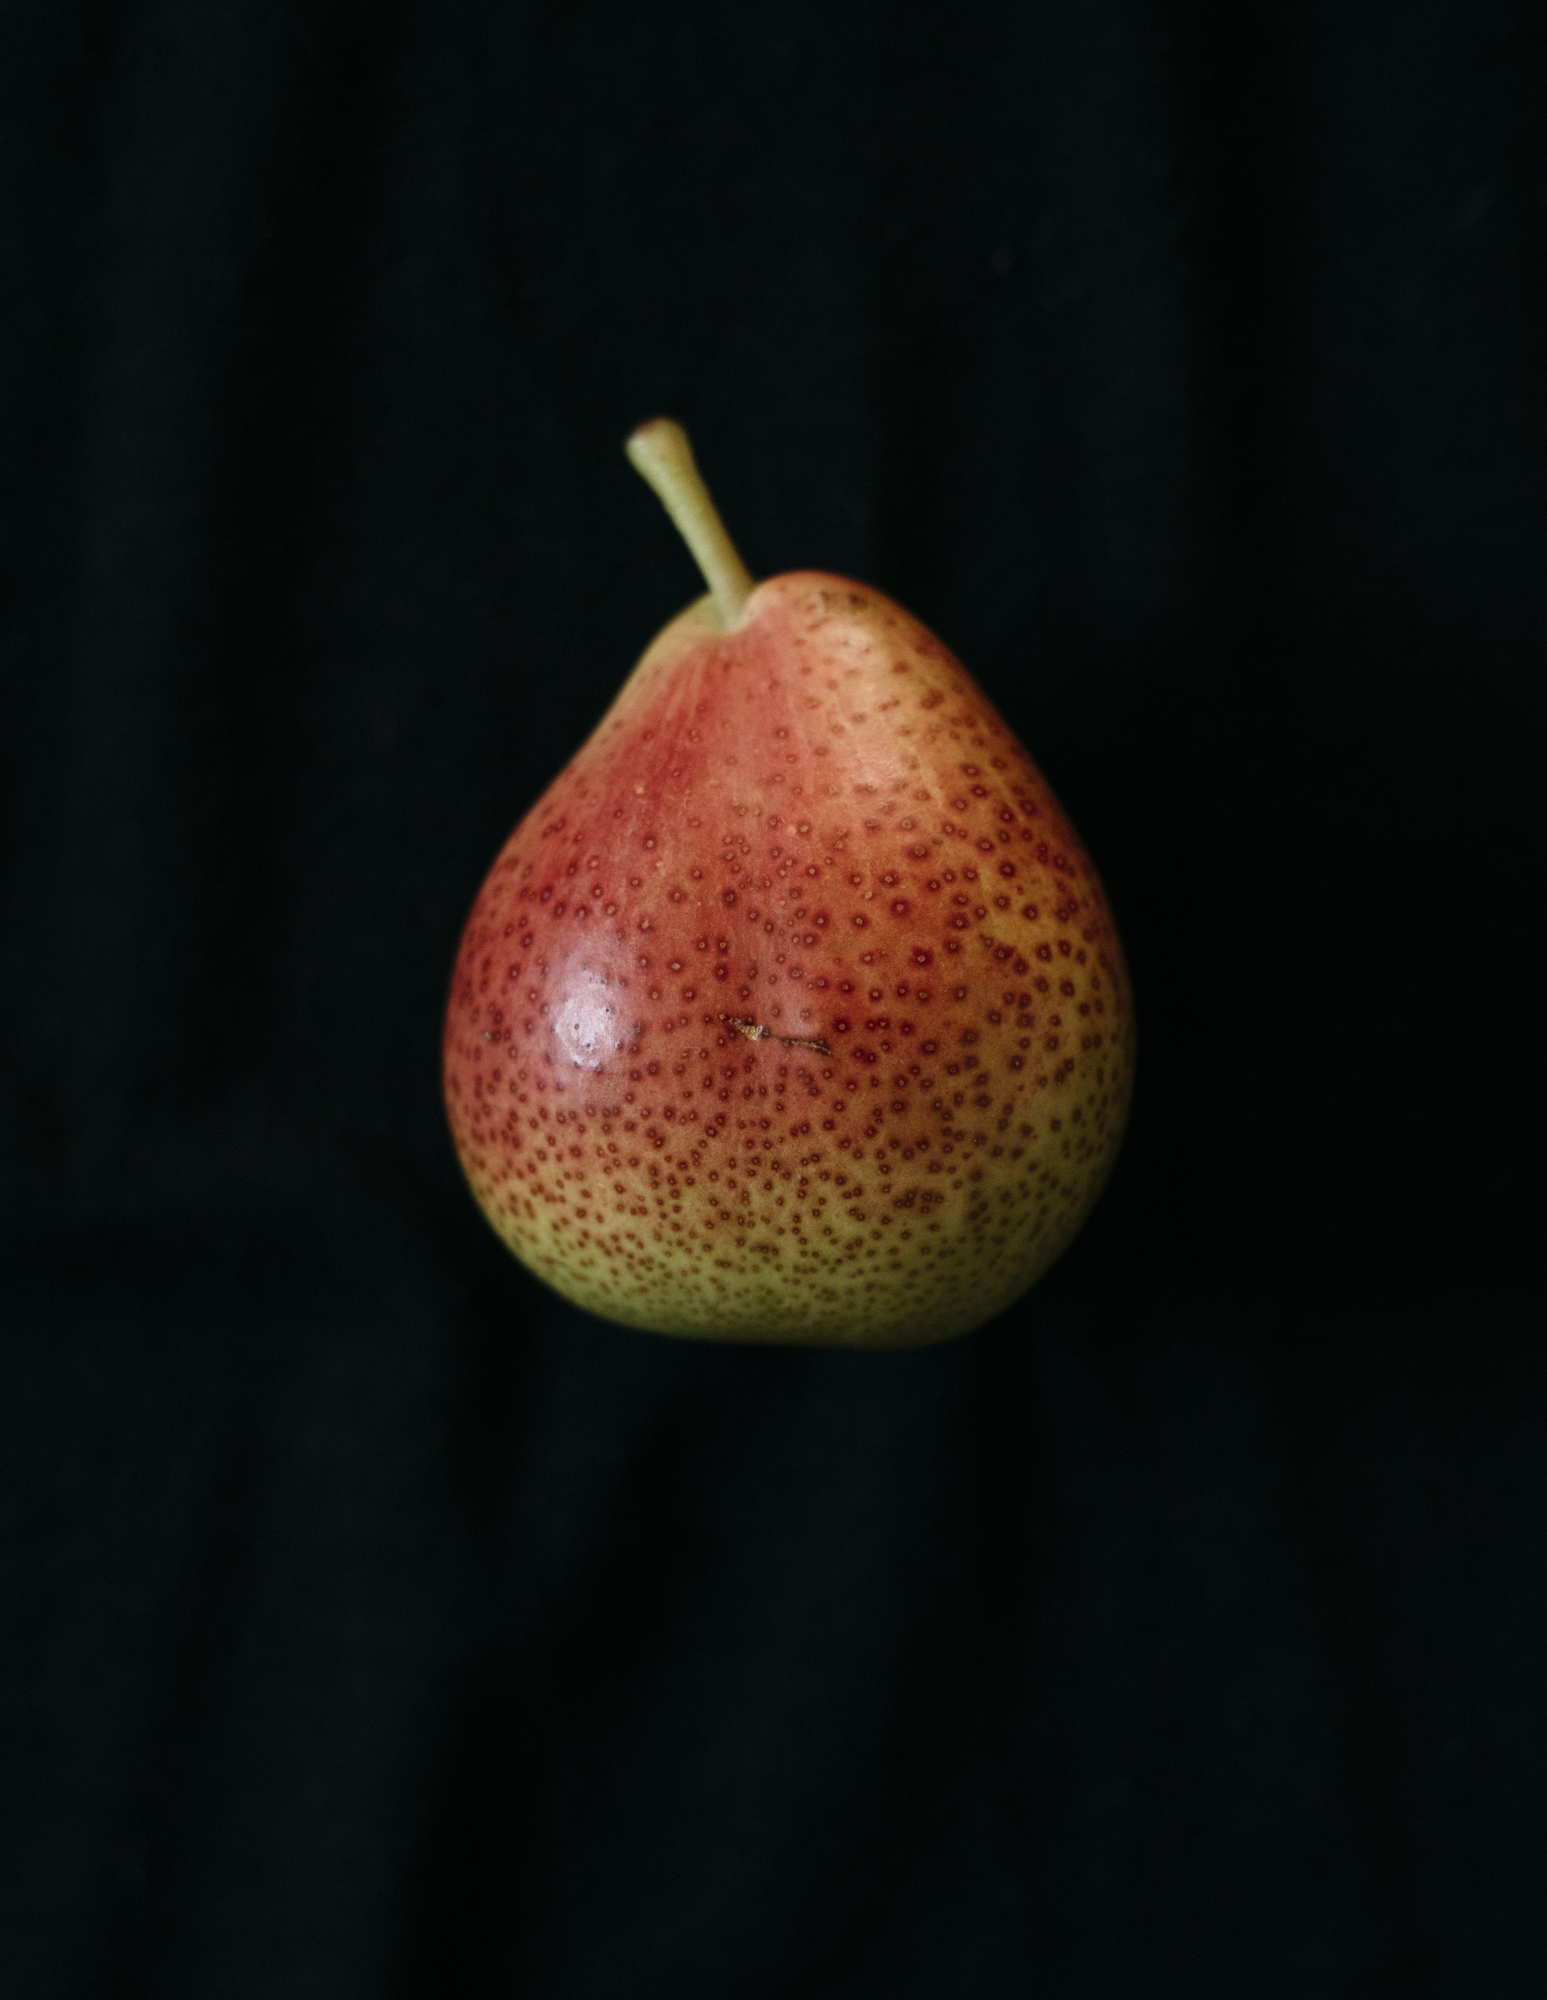 Image of a Forelle Pear on black by Los Angeles Food Photographer Rebecca Peloquin Photography as part of Dramatic Produce series